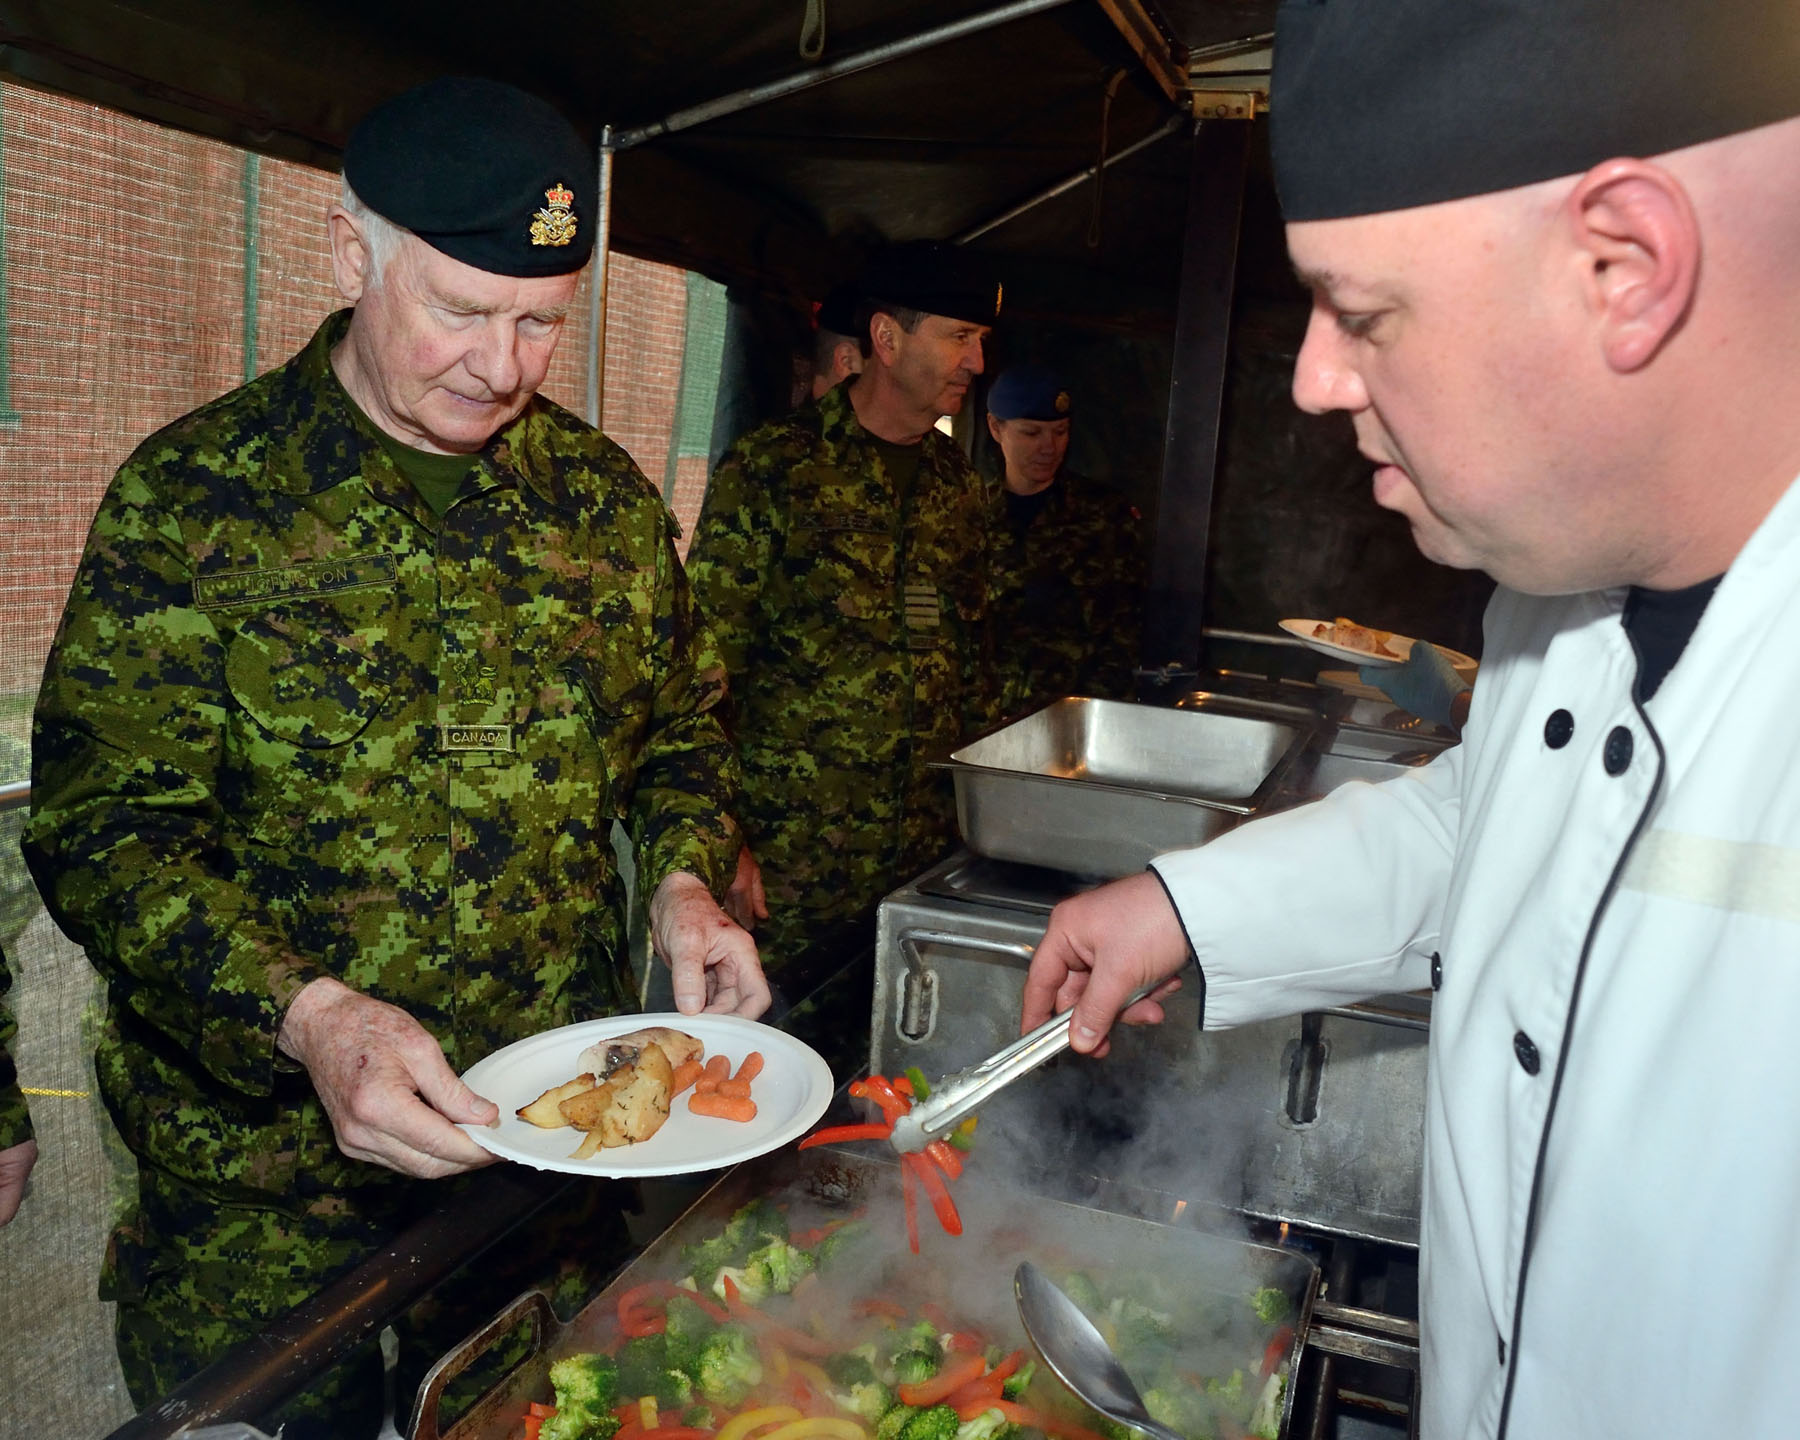 Lunch time consisted of a meal prepared by cooks from the Canadian Forces Support Training Group and served from a mobile field kitchen.